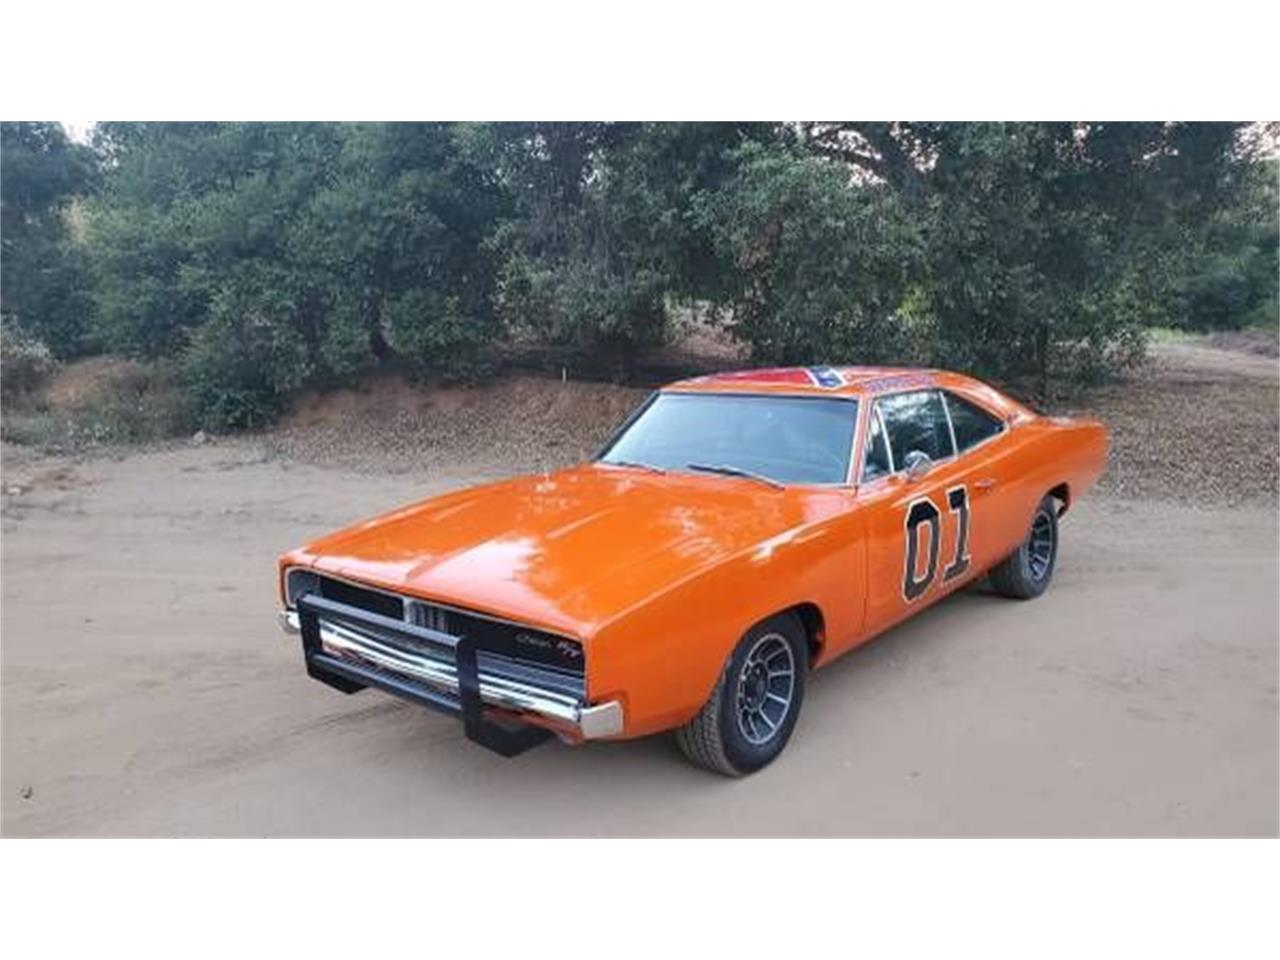 for sale 1968 dodge charger in cadillac, michigan cars - cadillac, mi at geebo